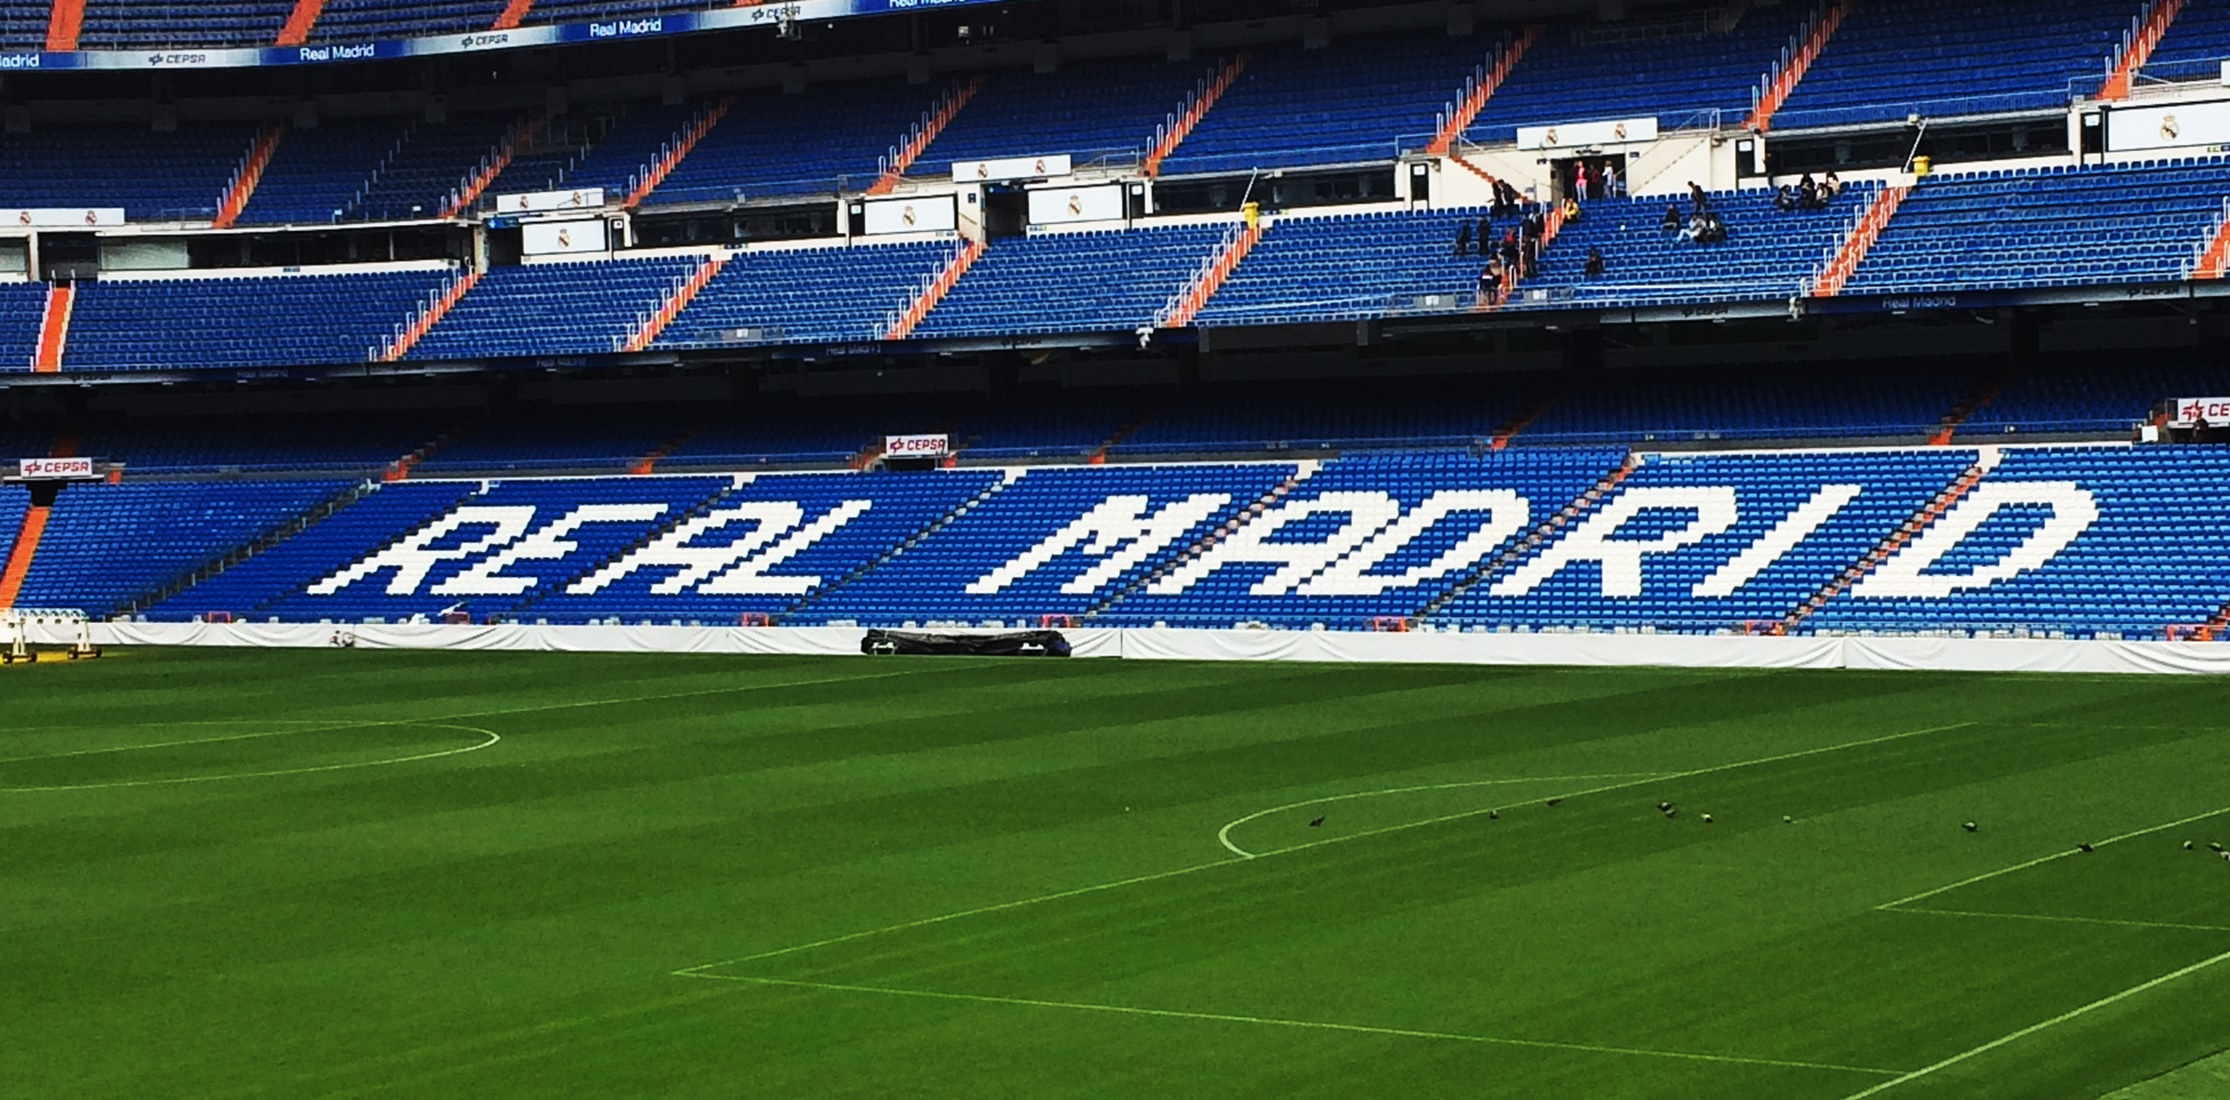 real madrid développement chine